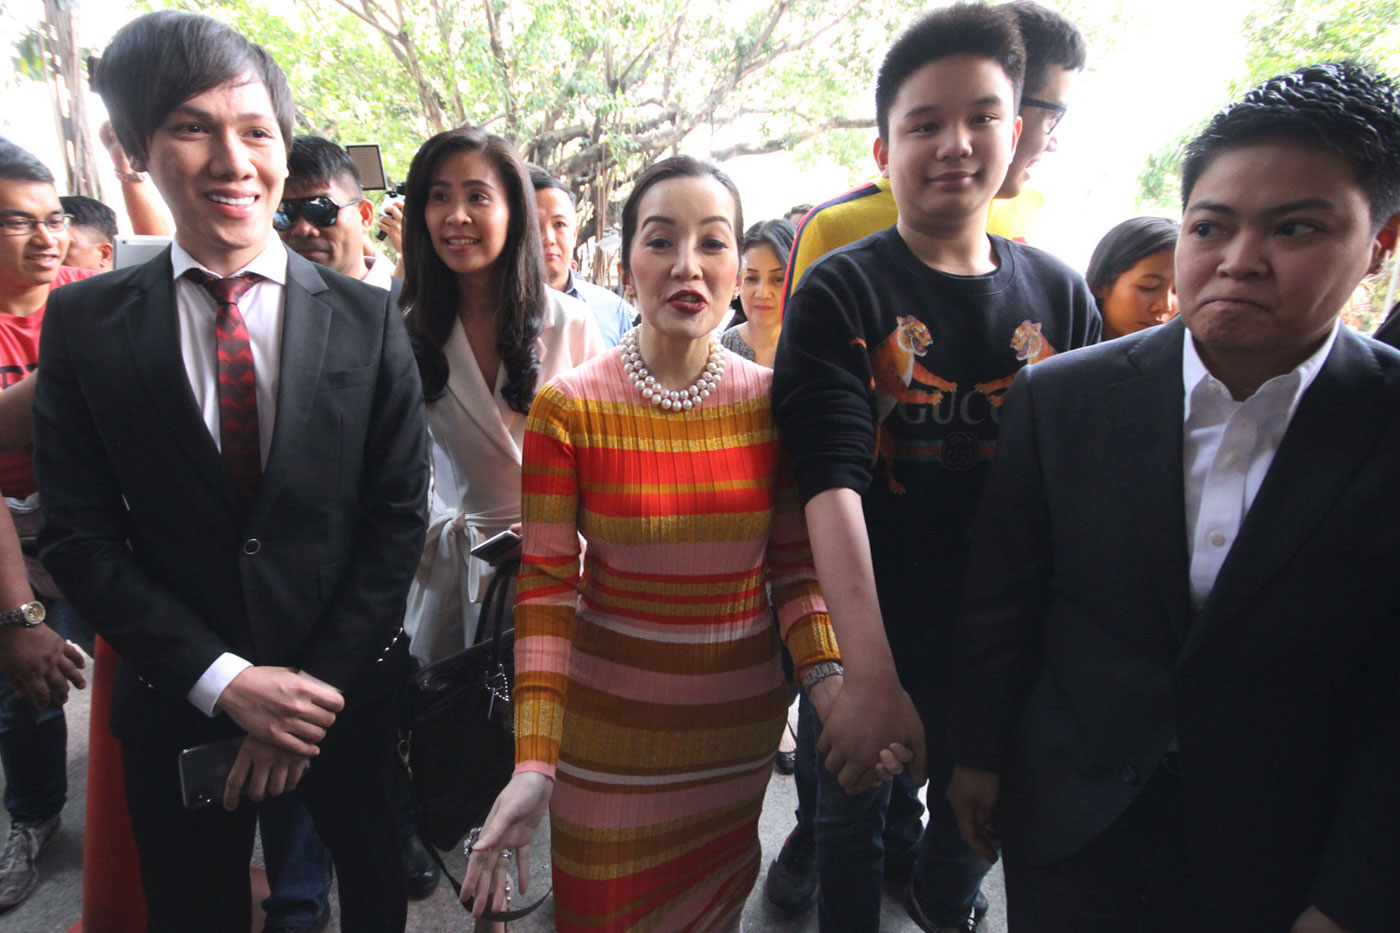 LEGAL BATTLES. In this file photo, actress Kris Aquino files a Counter-Affidavit over grave threats charges pressed against her by brothers Nikko and Jesus Falcis. File photo by Darren Langit/Rappler